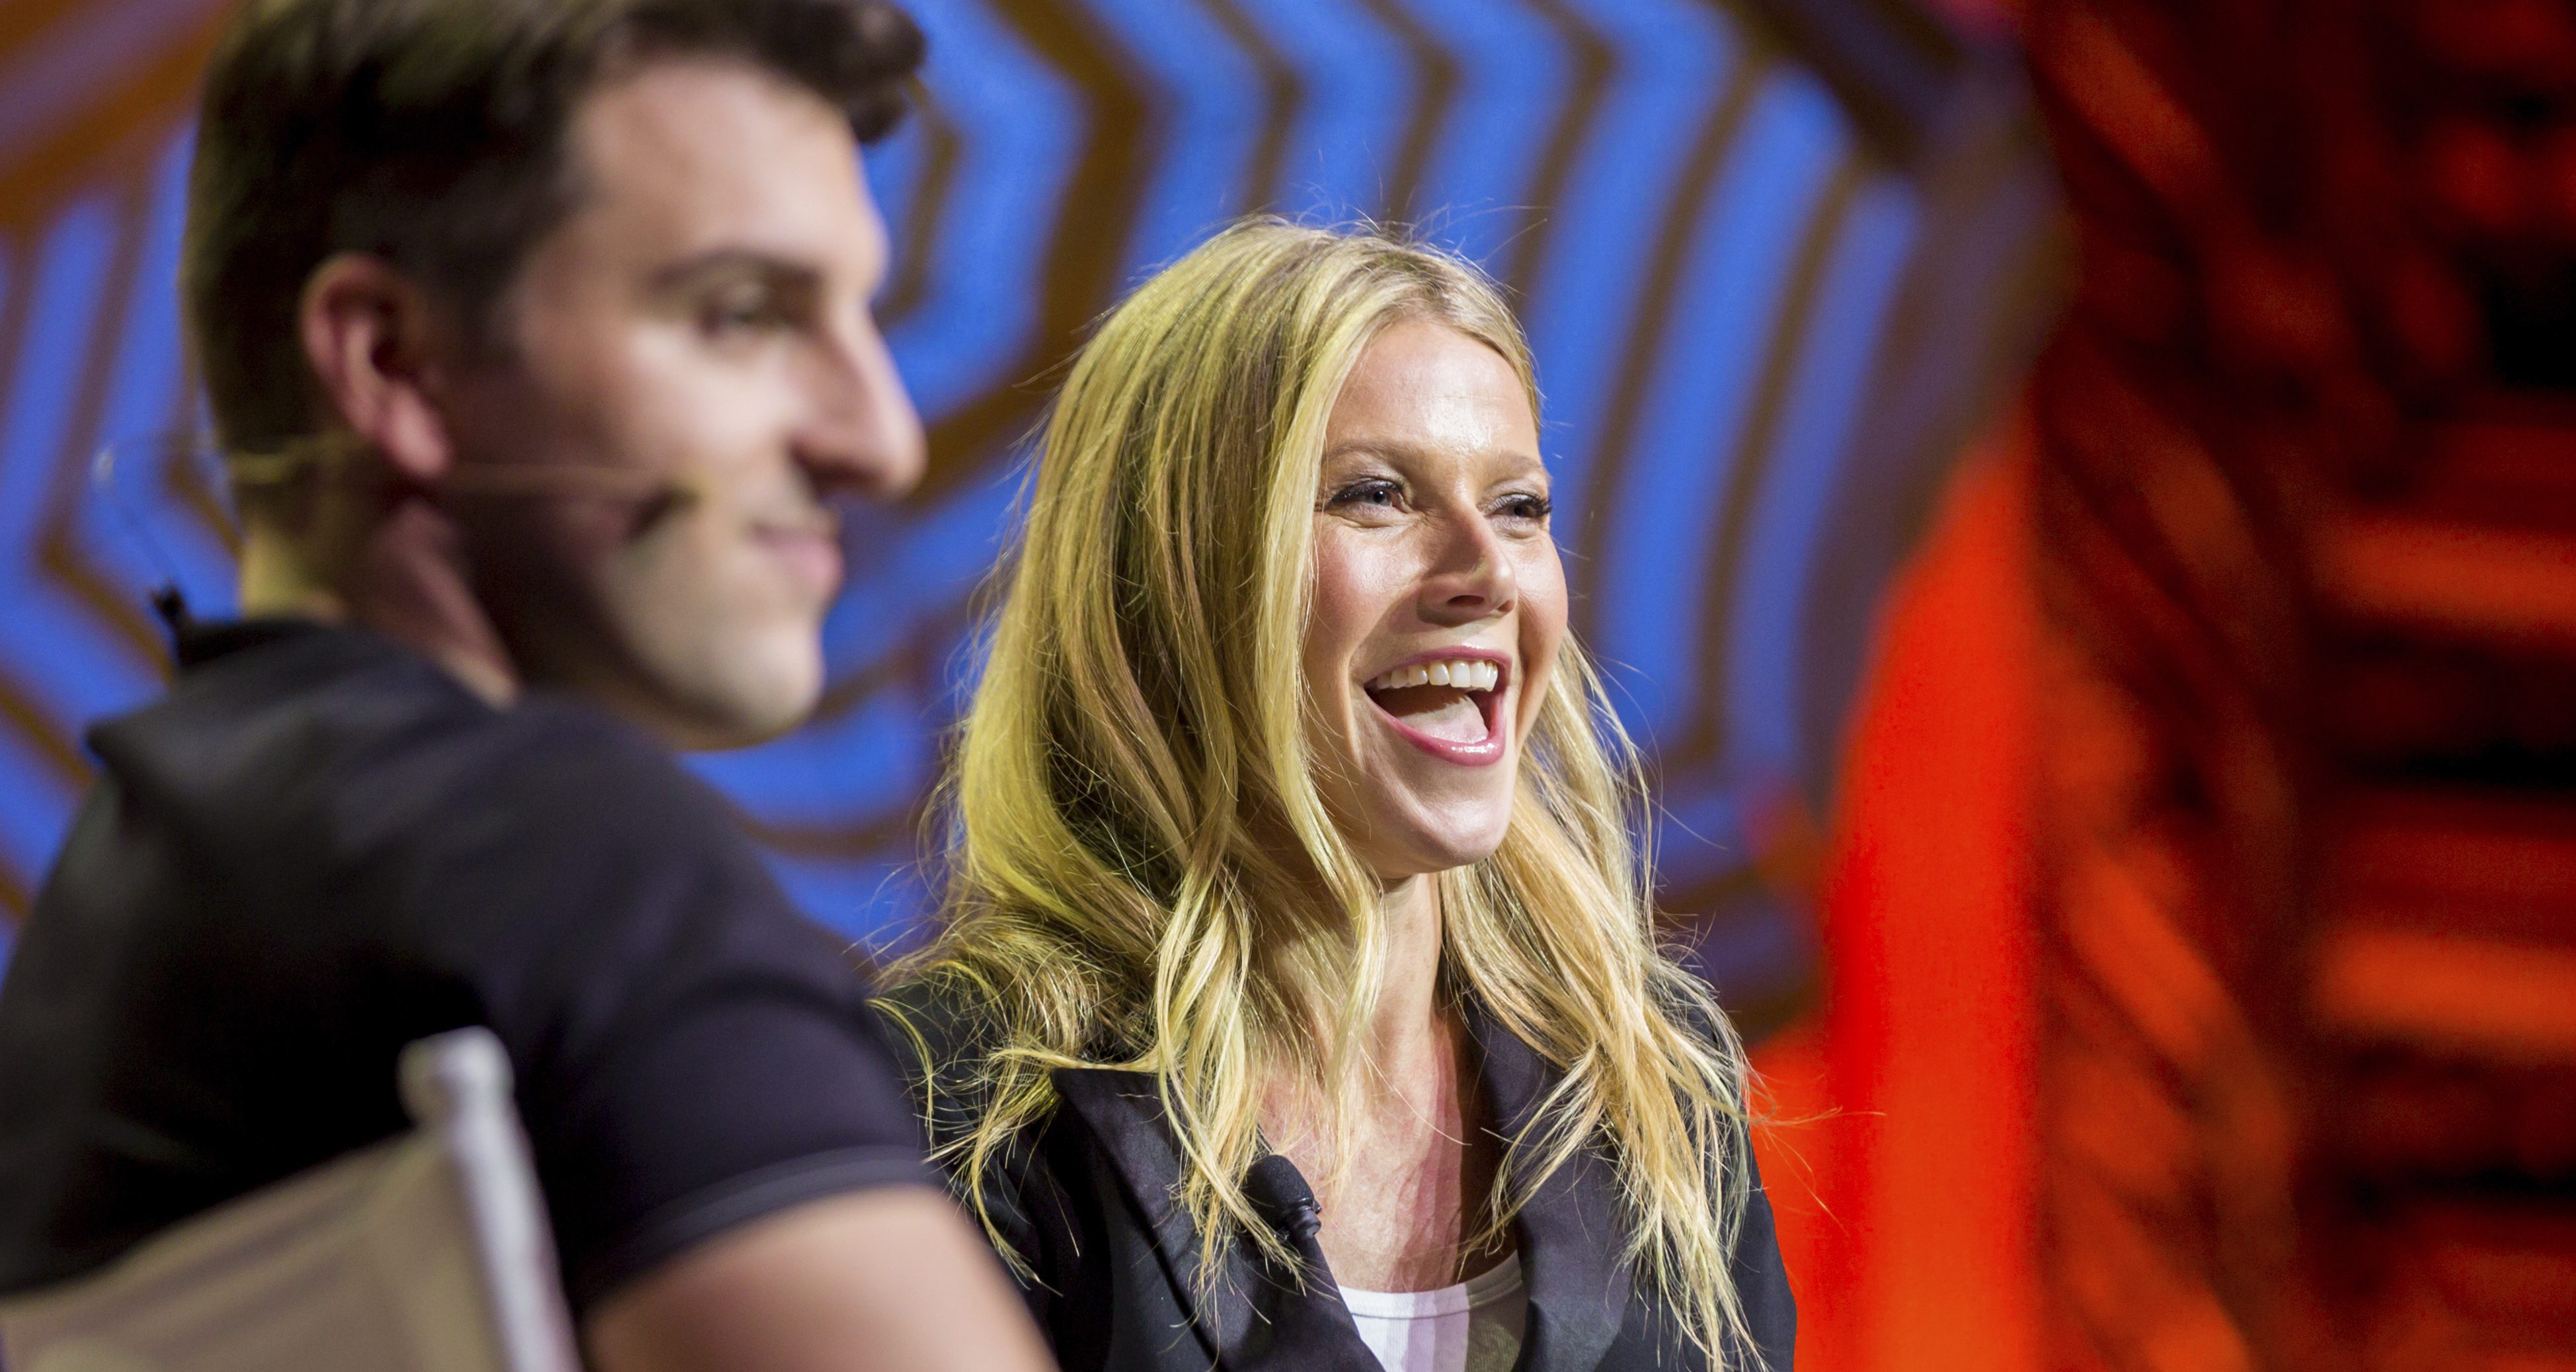 Gwyneth Paltrow, right, and Airbnb CEO Brian Chesky speak at a panel during the Airbnb Open Spotlight at The Orpheum Theatre on Saturday, Nov. 19, 2016, in Los Angeles. (Photo by Willy Sanjuan/Invision/AP)